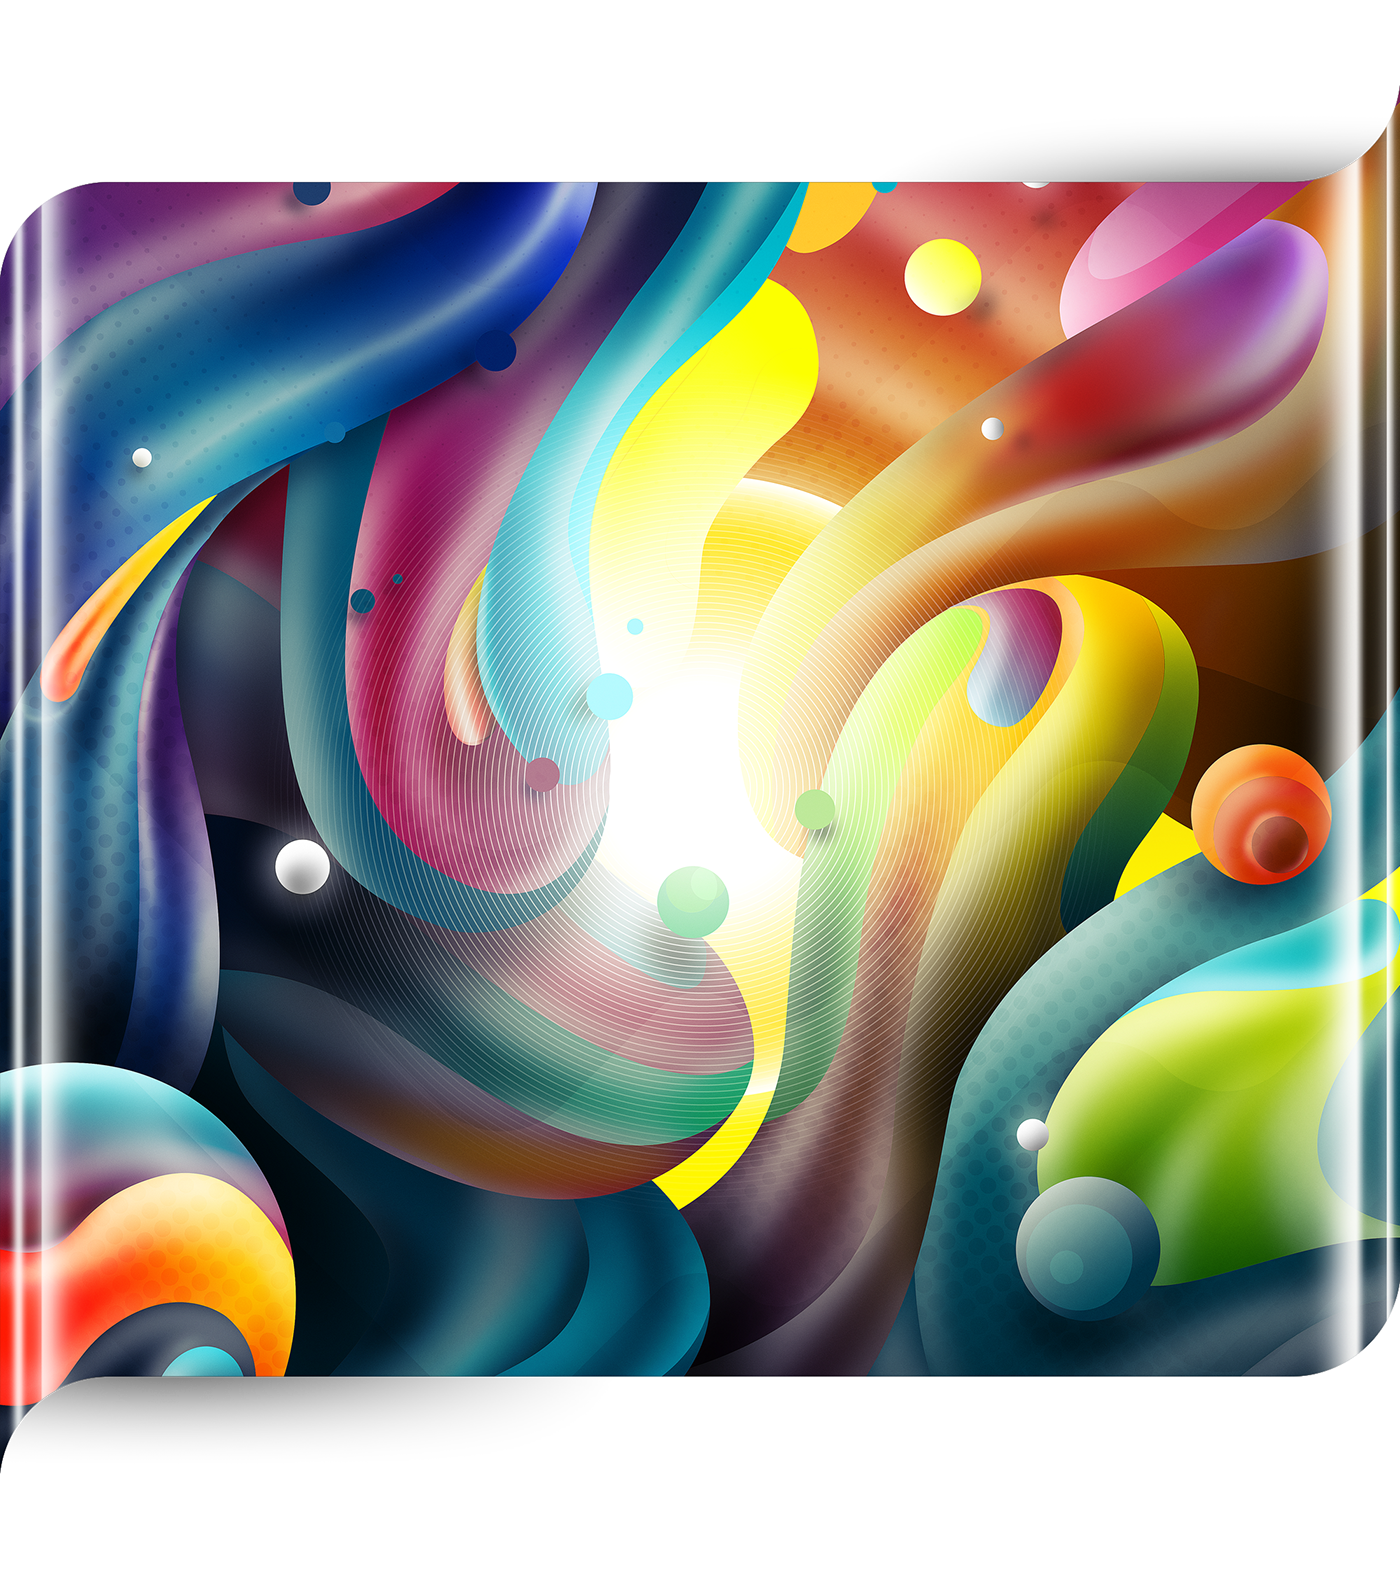 huawei admojo design wallpaper abstract phone mobile 3D ILLUSTRATION